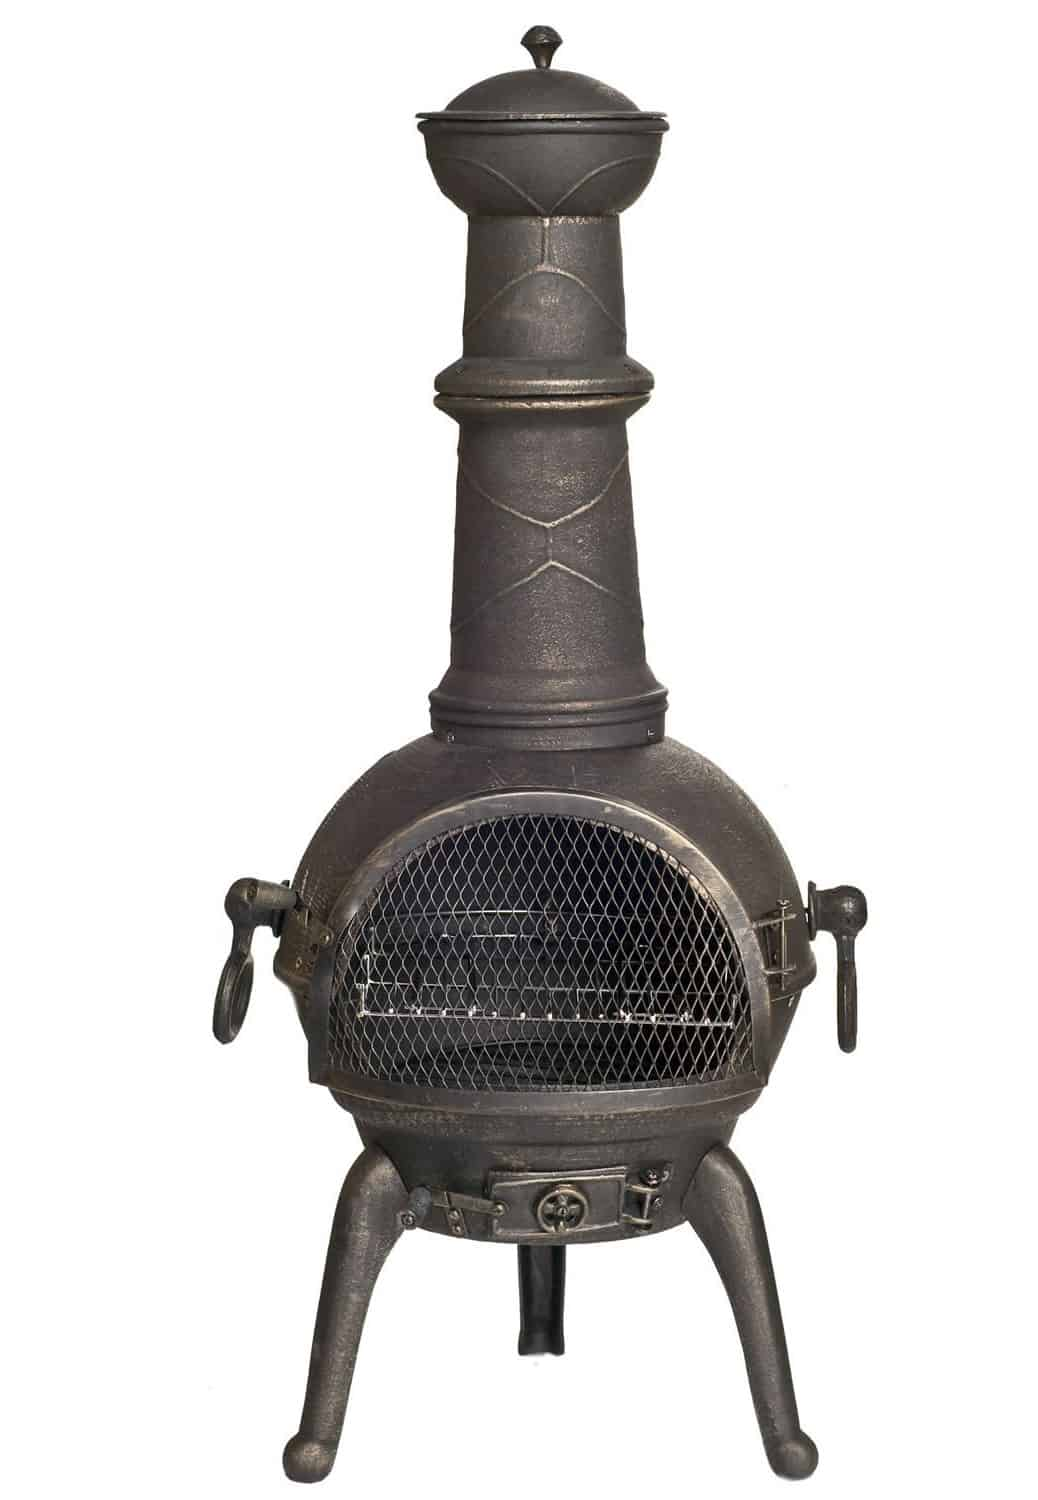 Best Cast Iron Chimenea – La Hacienda Sierra Cast Iron Chimenea